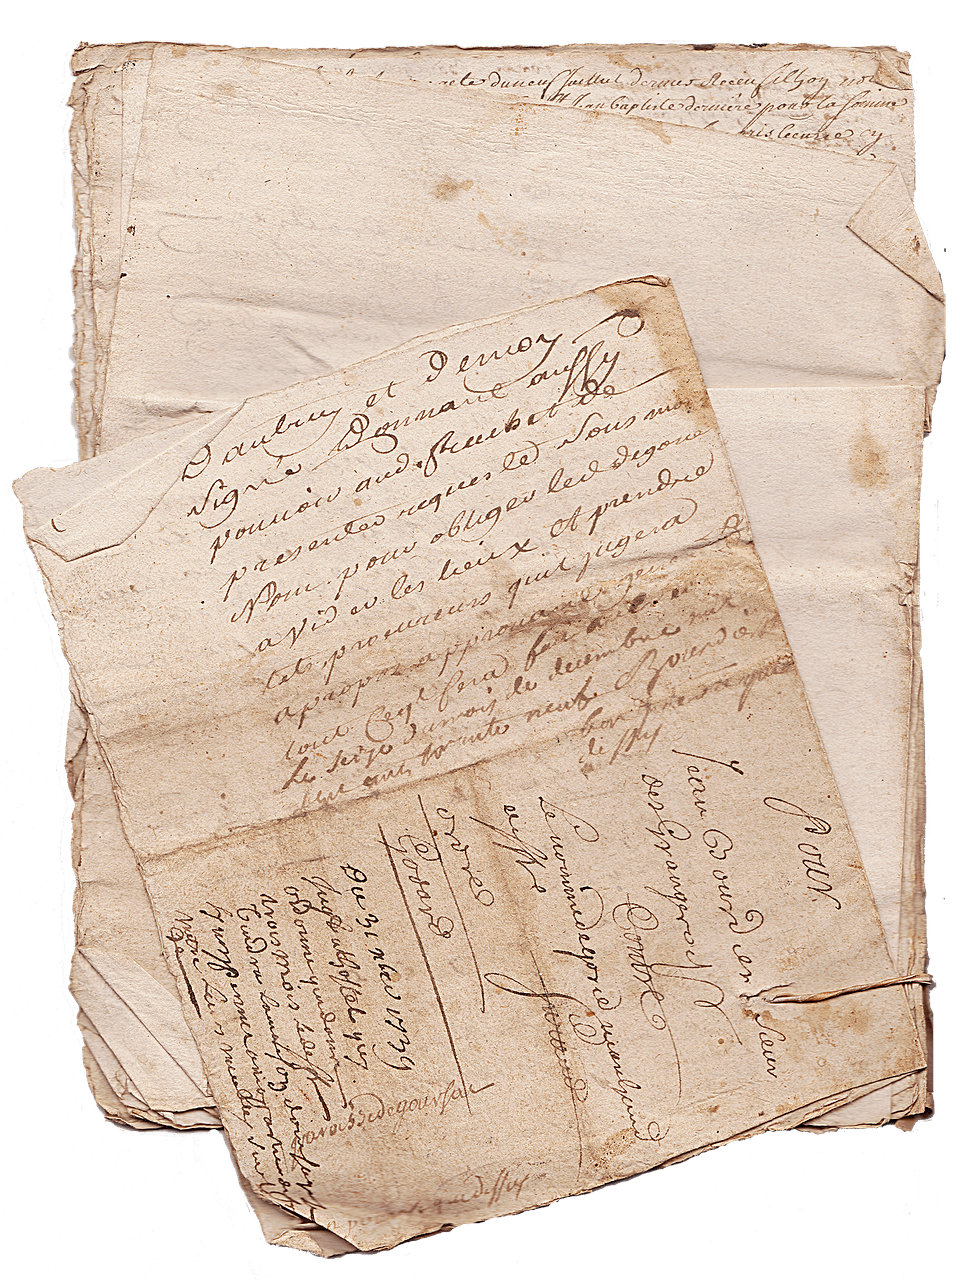 Old Paper Vintage Texture Document Parchment Free Photo